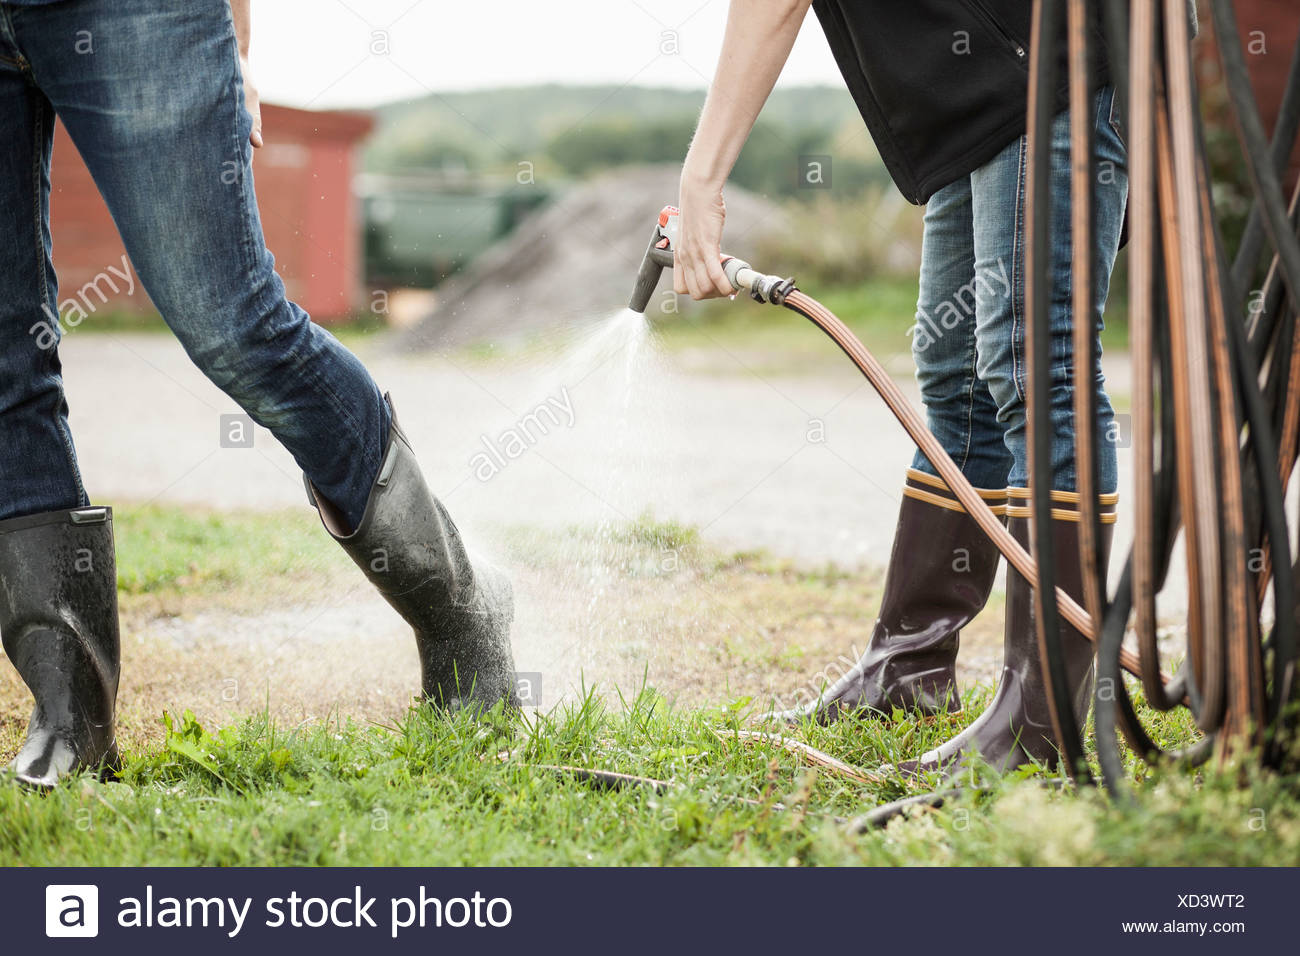 Low section of woman spraying water from hose on man's leg on farm - Stock Image